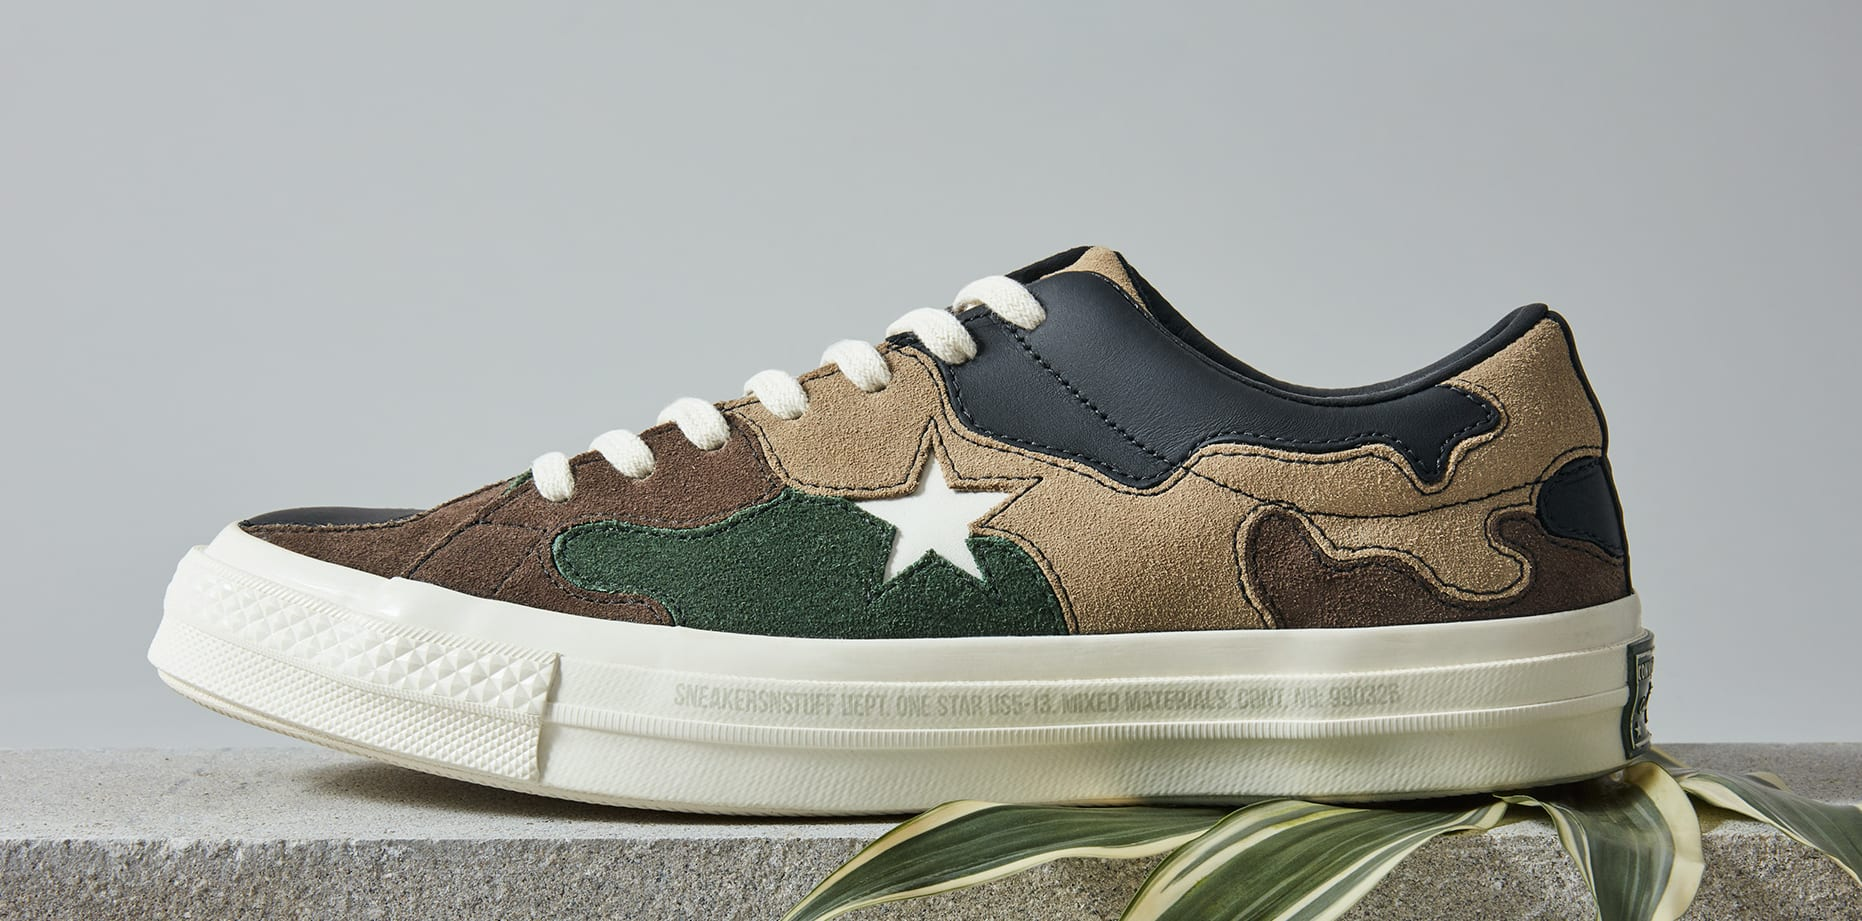 Sneakersnstuff x Converse One Star 'Canteen' (Lateral)